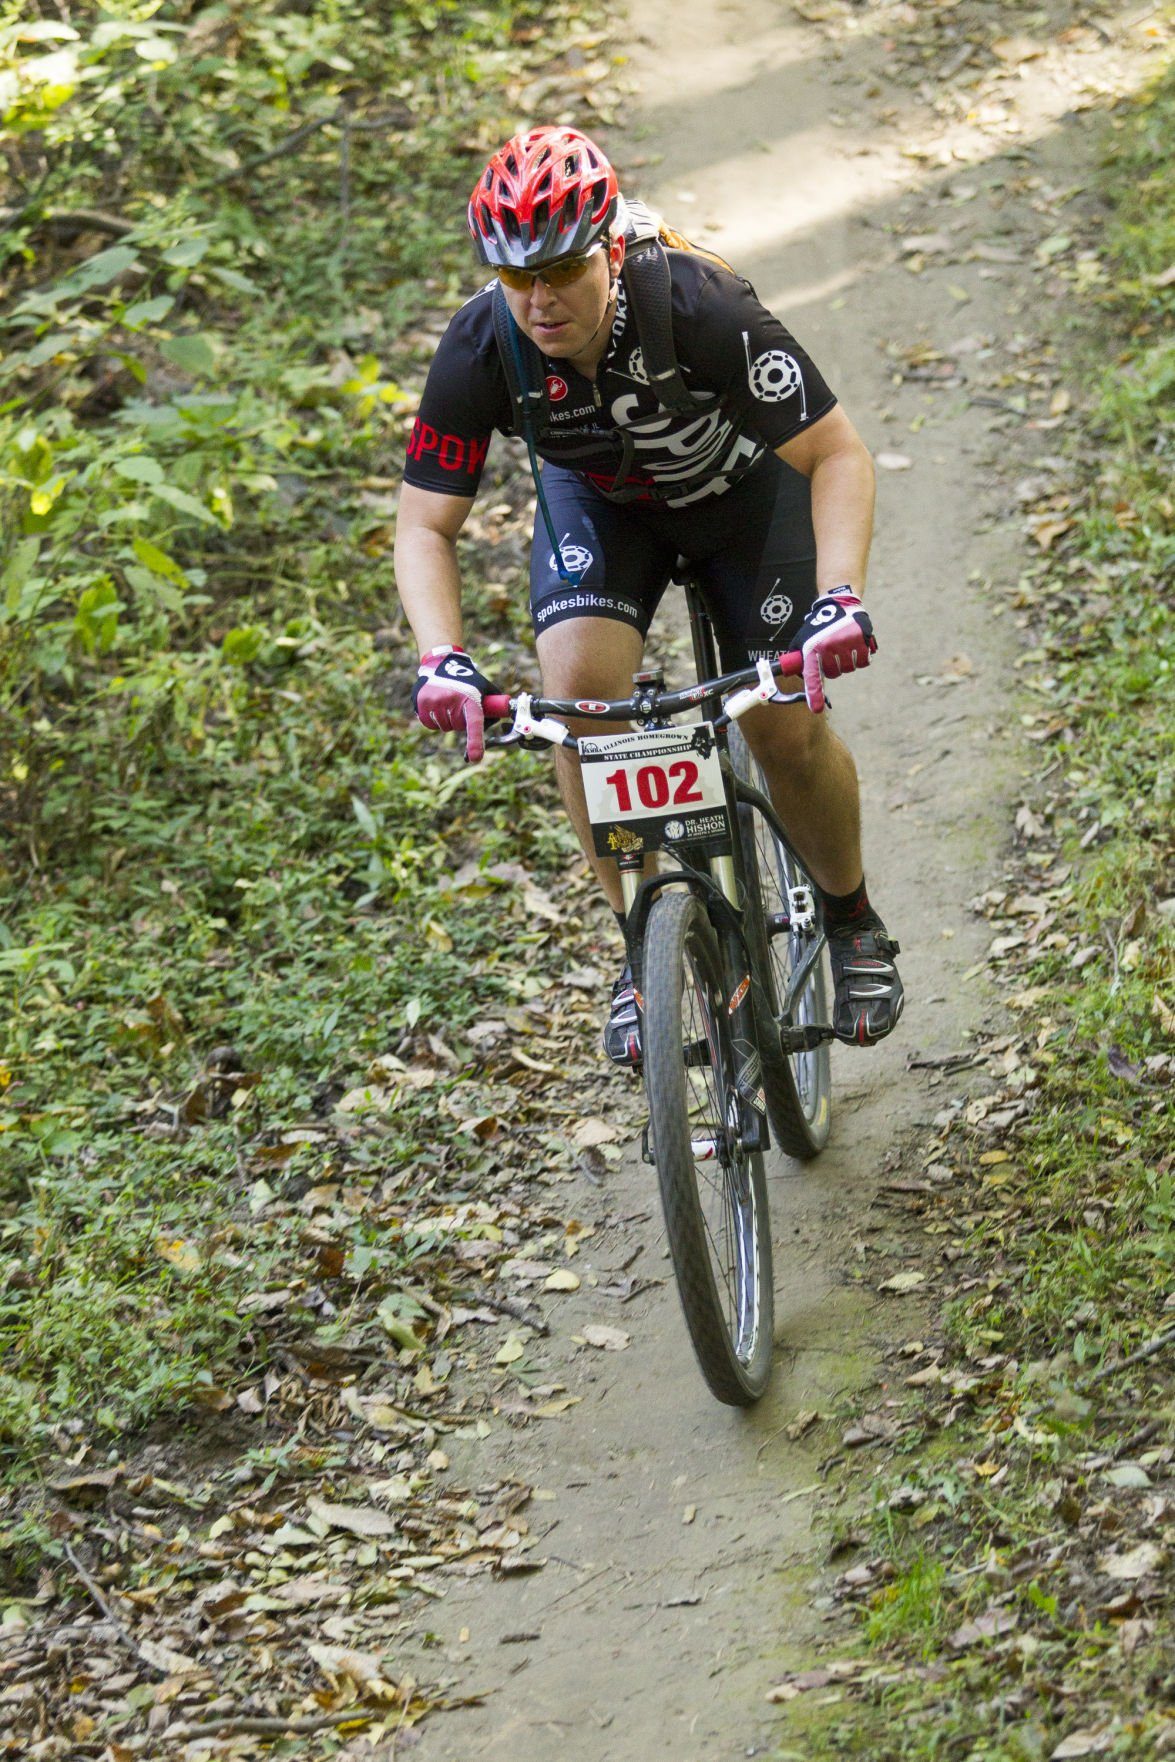 the thrill of mountain bike riding essay The mountains of slovenia have a well-deserved reputation for world-class mountain bike riding mountain biking in slovenia 2 experience the thrill of mountain biking through slovenia's rugged terrain.